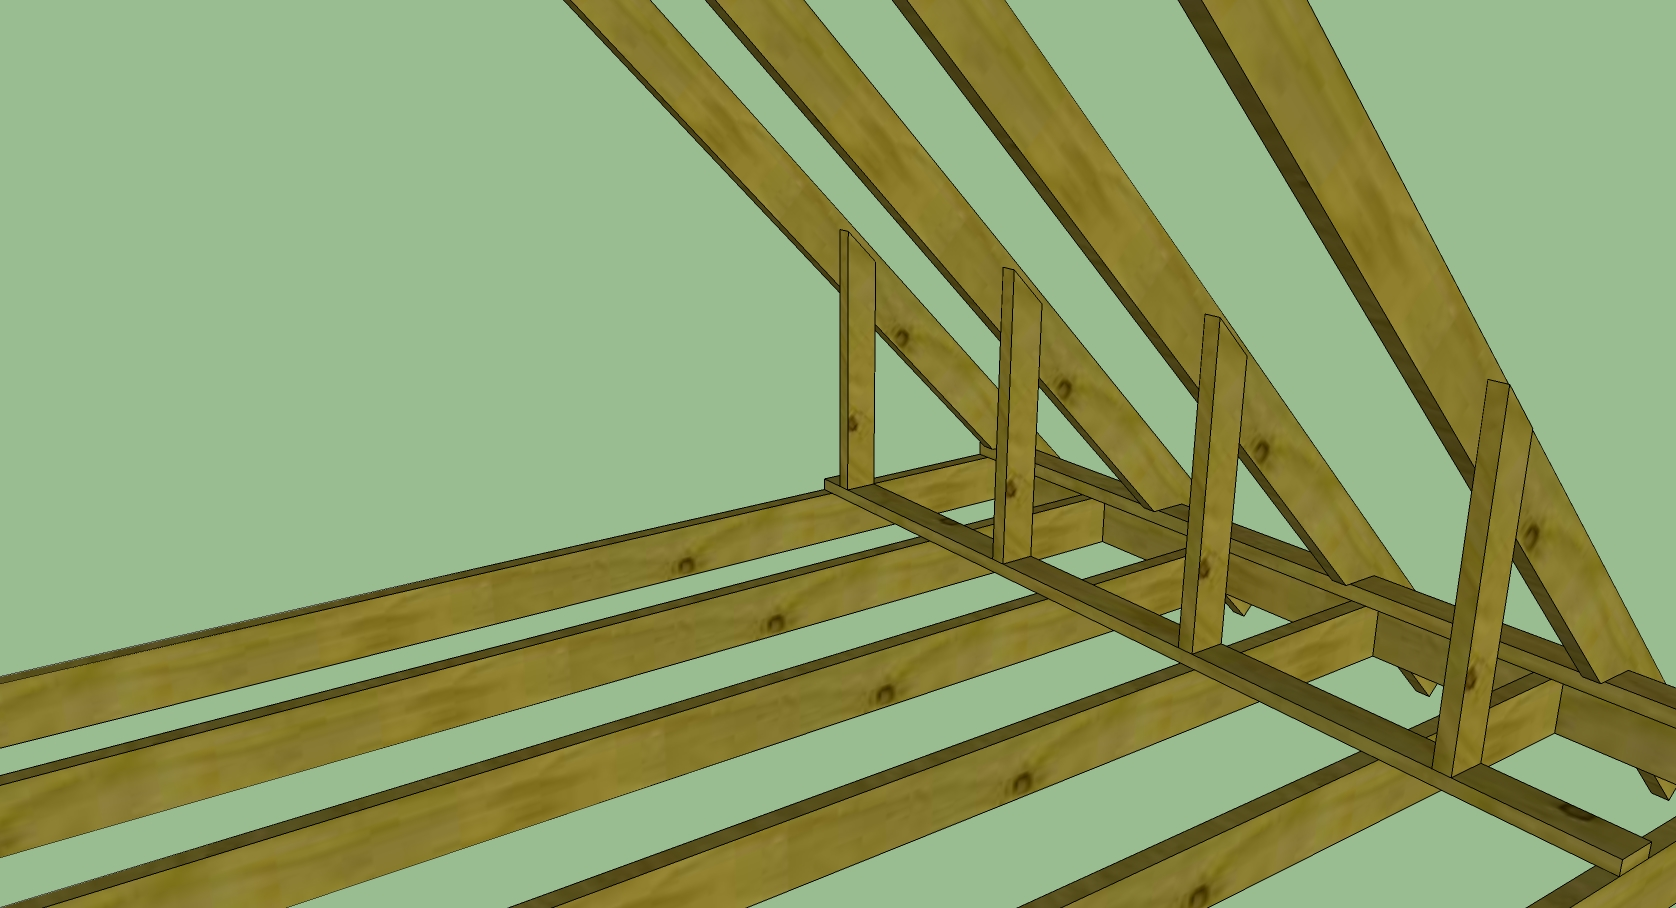 Control room build modes soffits slat walls etc for Knee wall support